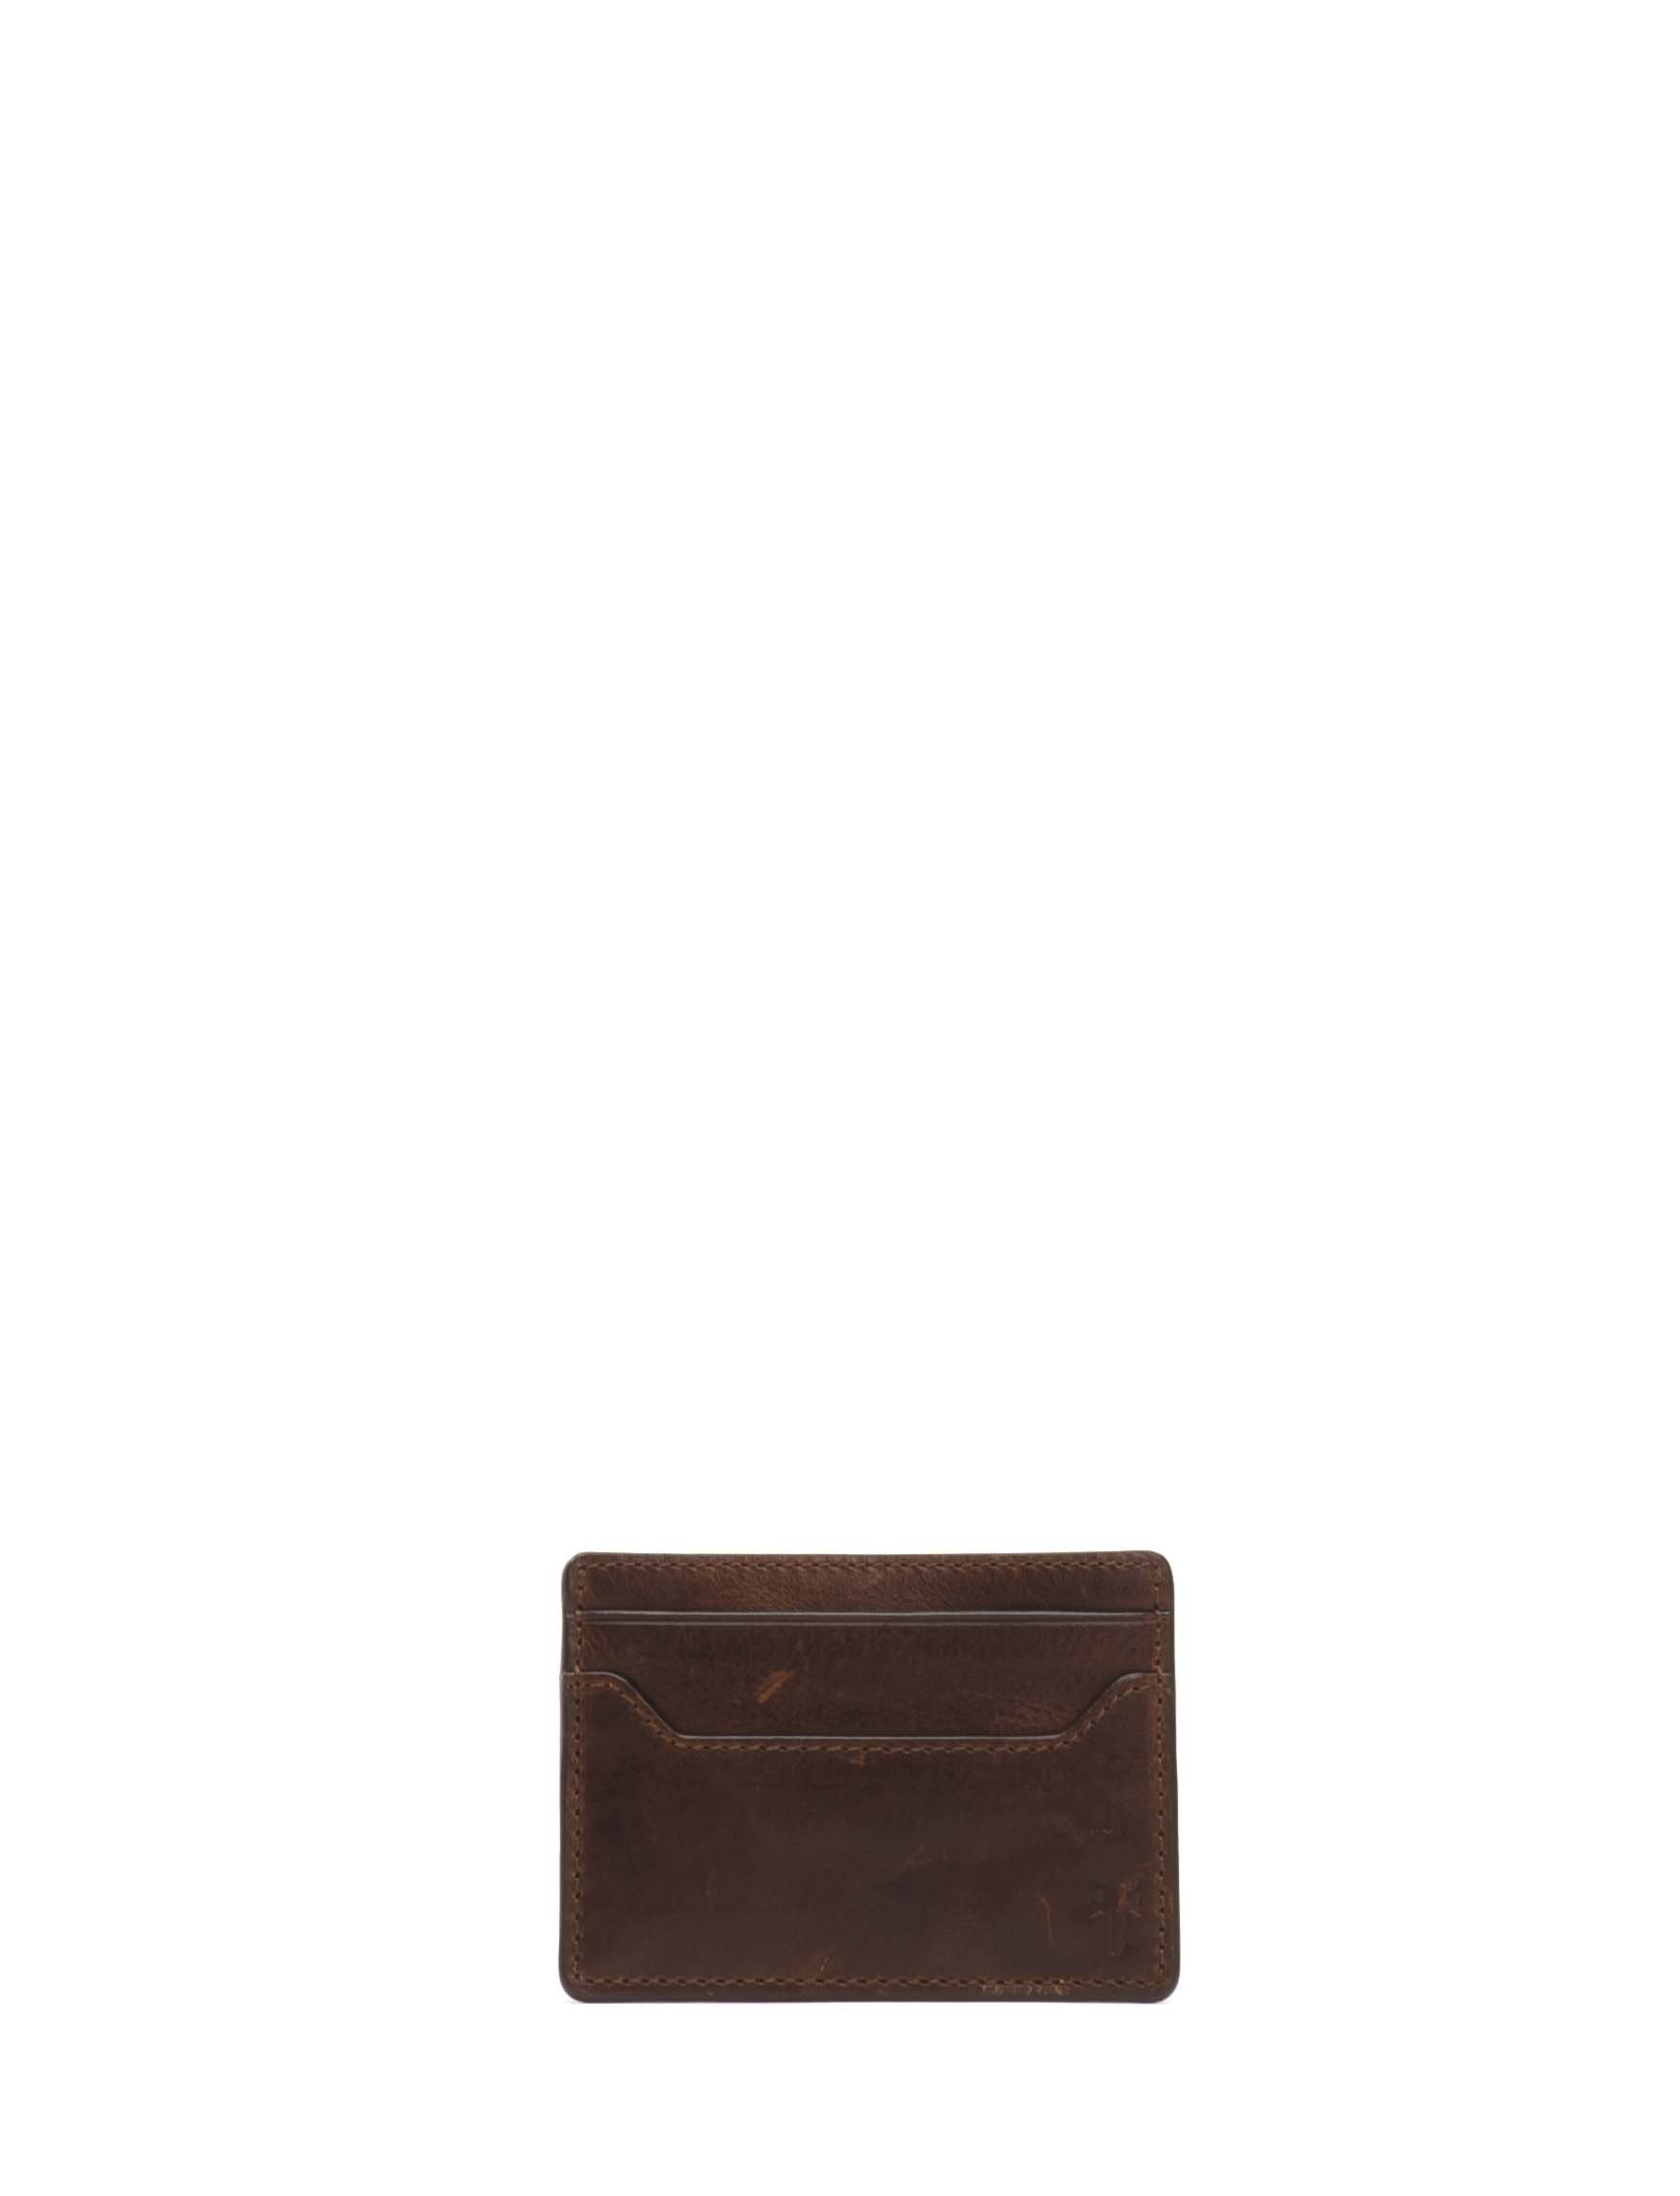 Logan Money Clip Card Case Credit Card Holder, dark brown, One Size